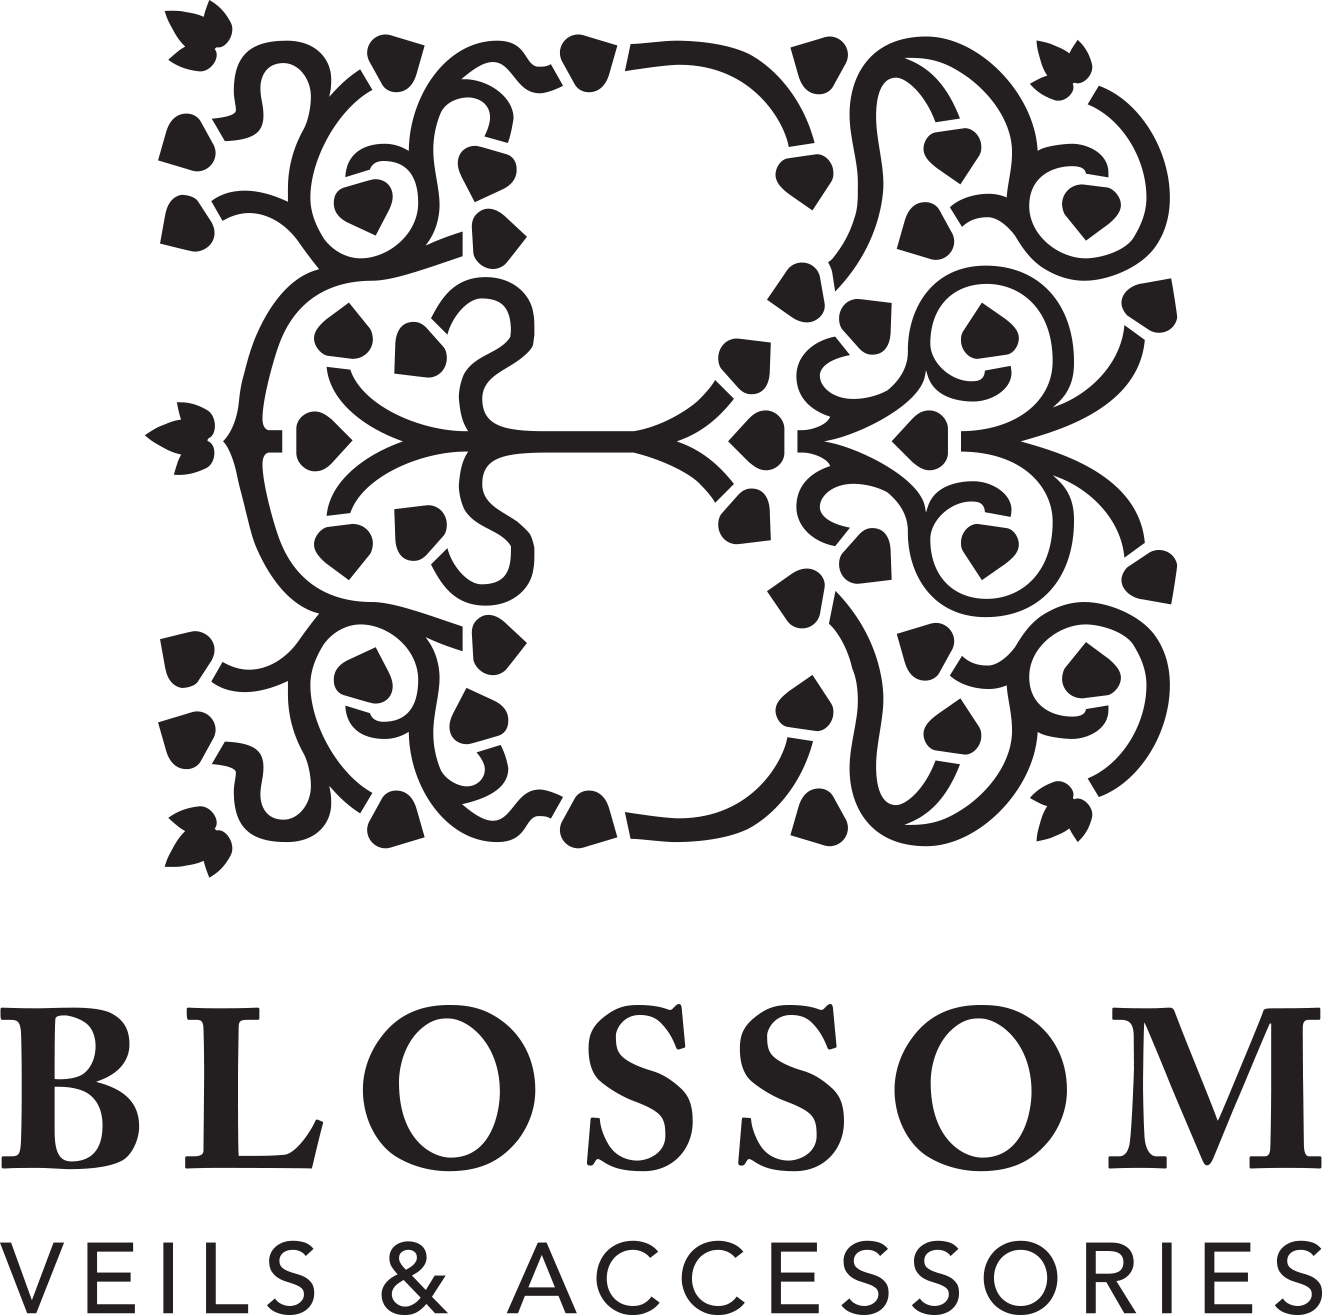 Blossom Veils & Accessories